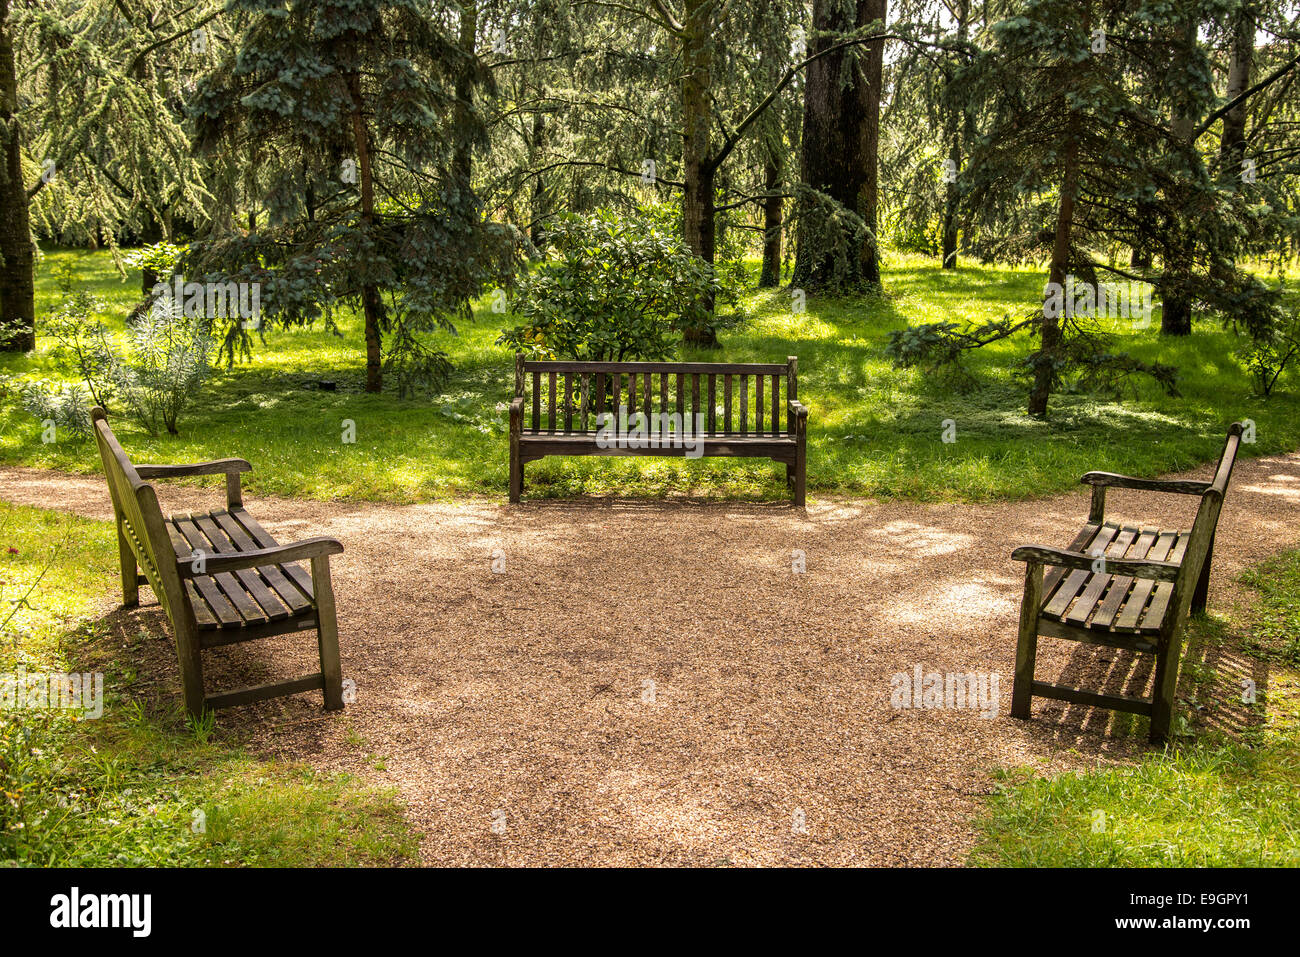 Three Benches On Converging Paths In A Forest Stock Photo